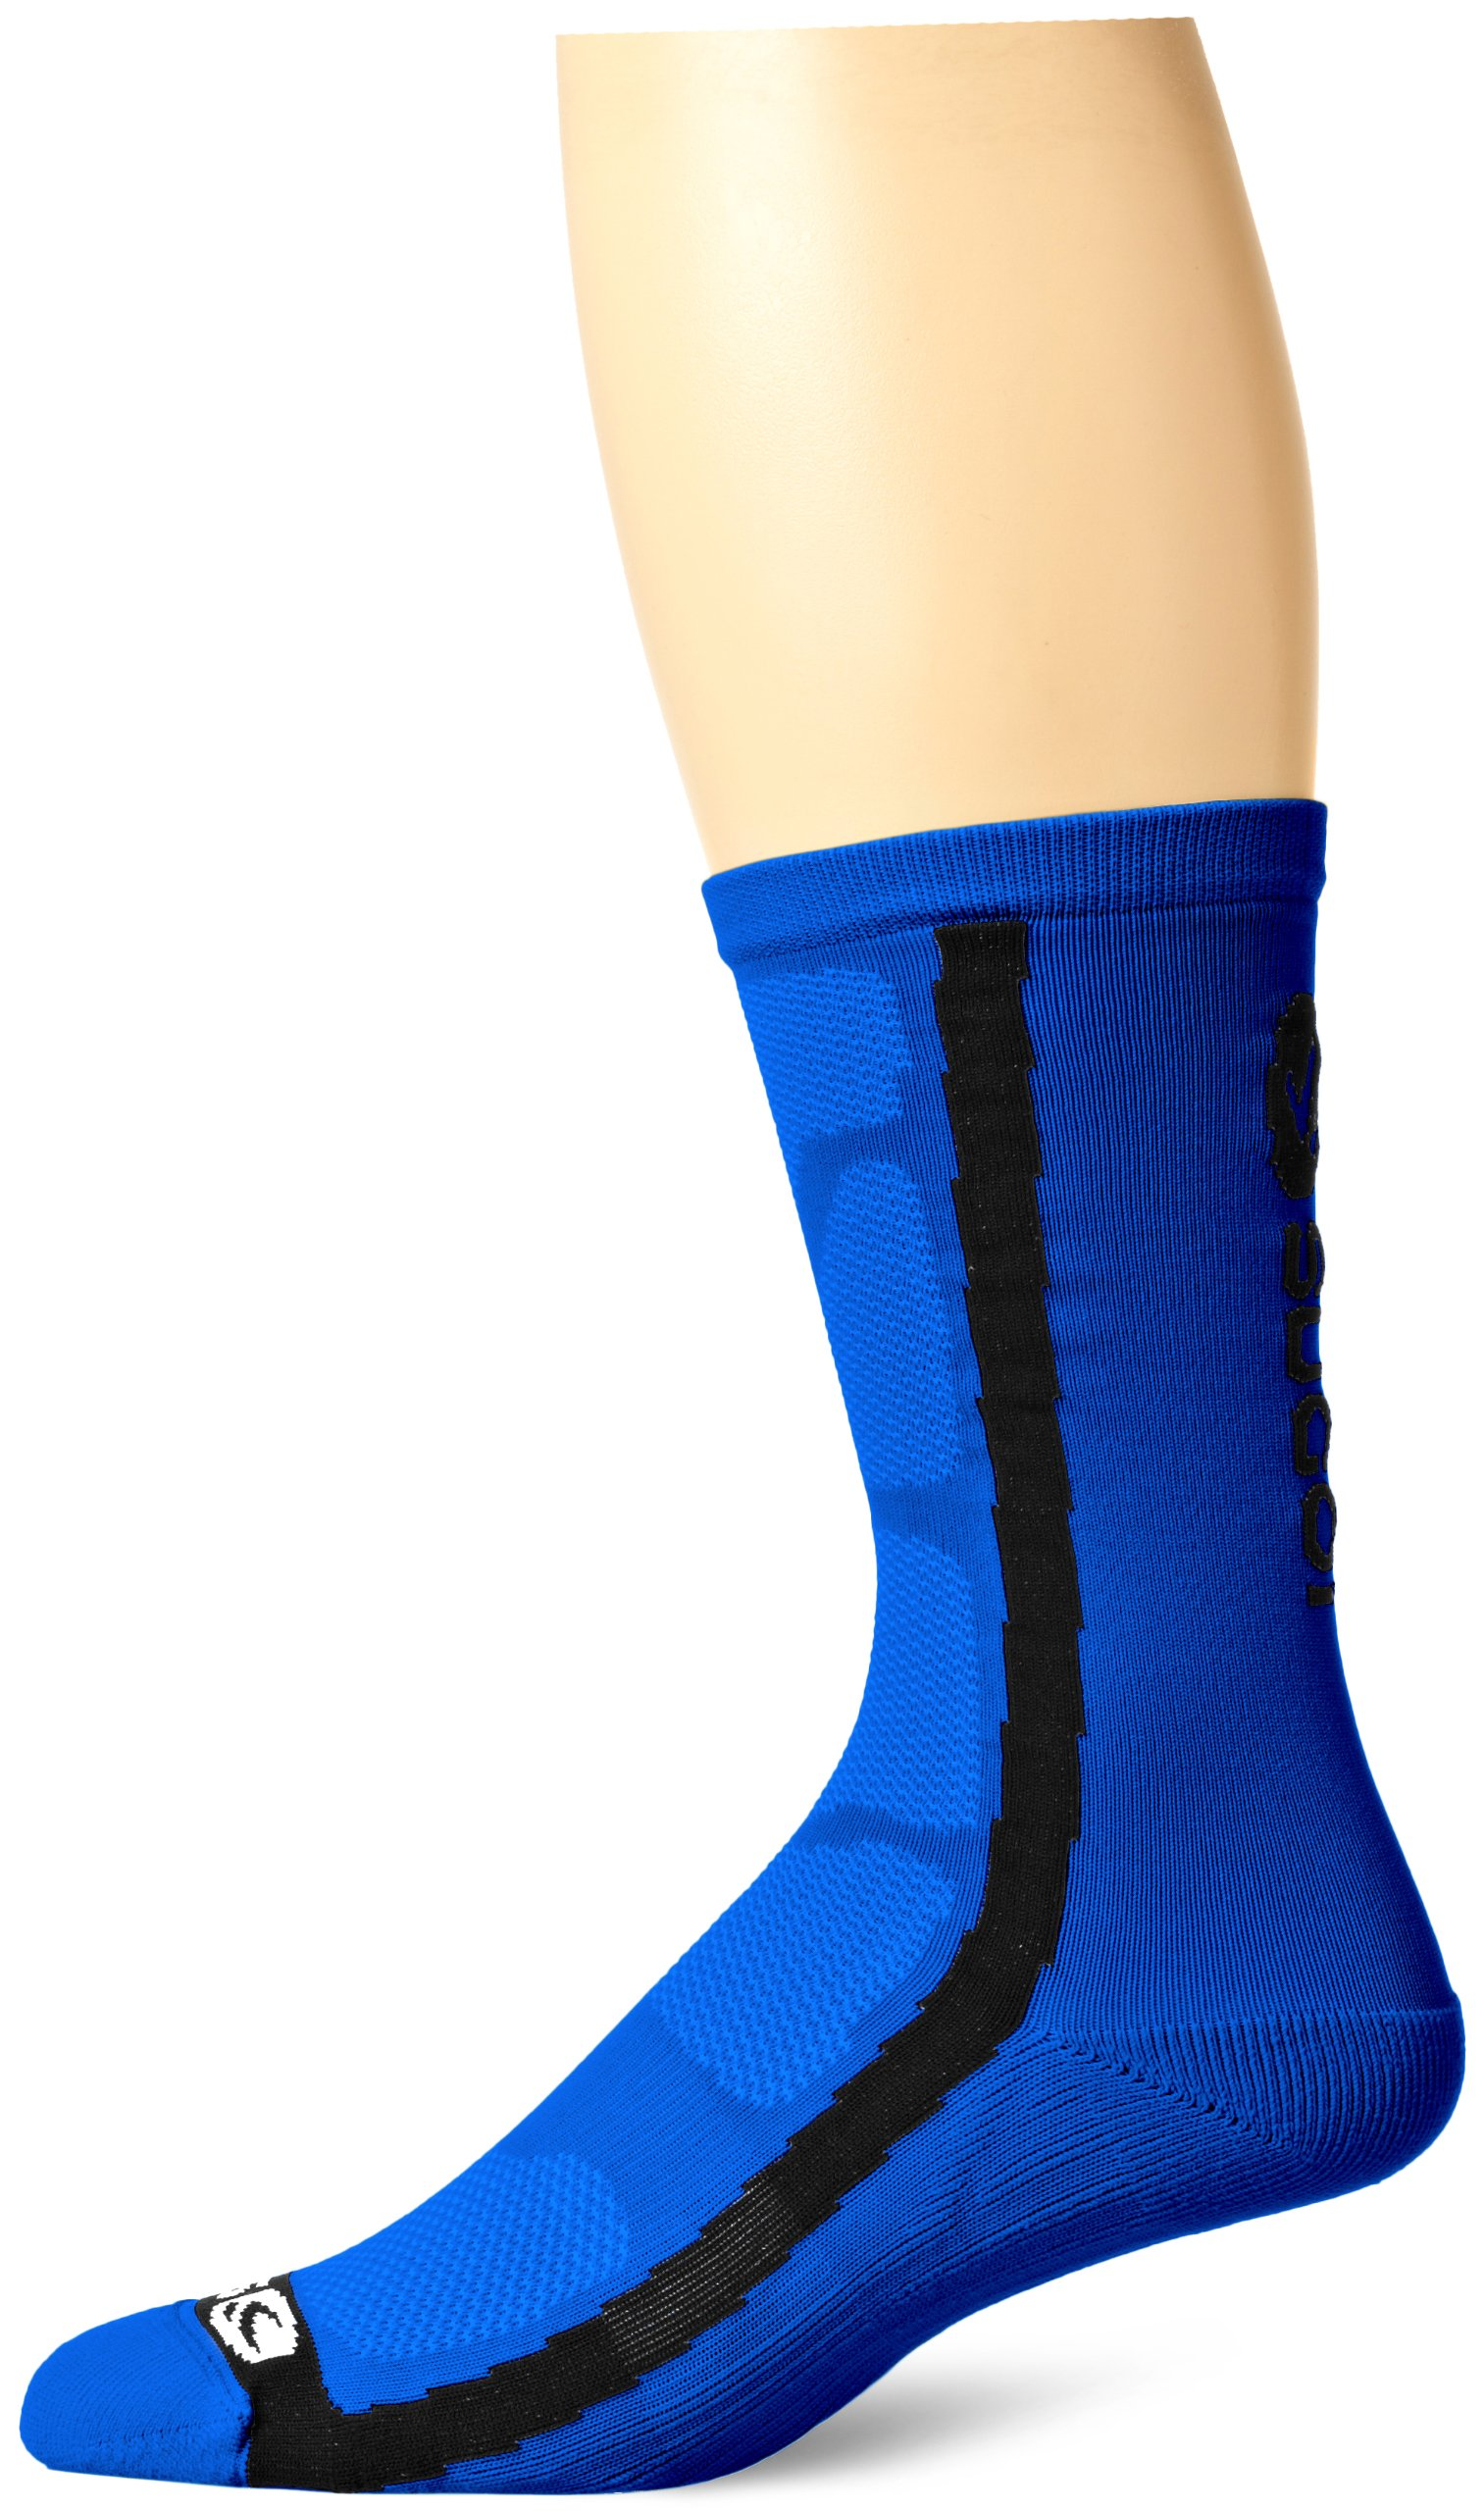 Sugoi RS Crew Socks, True Blue, Large by SUGOi